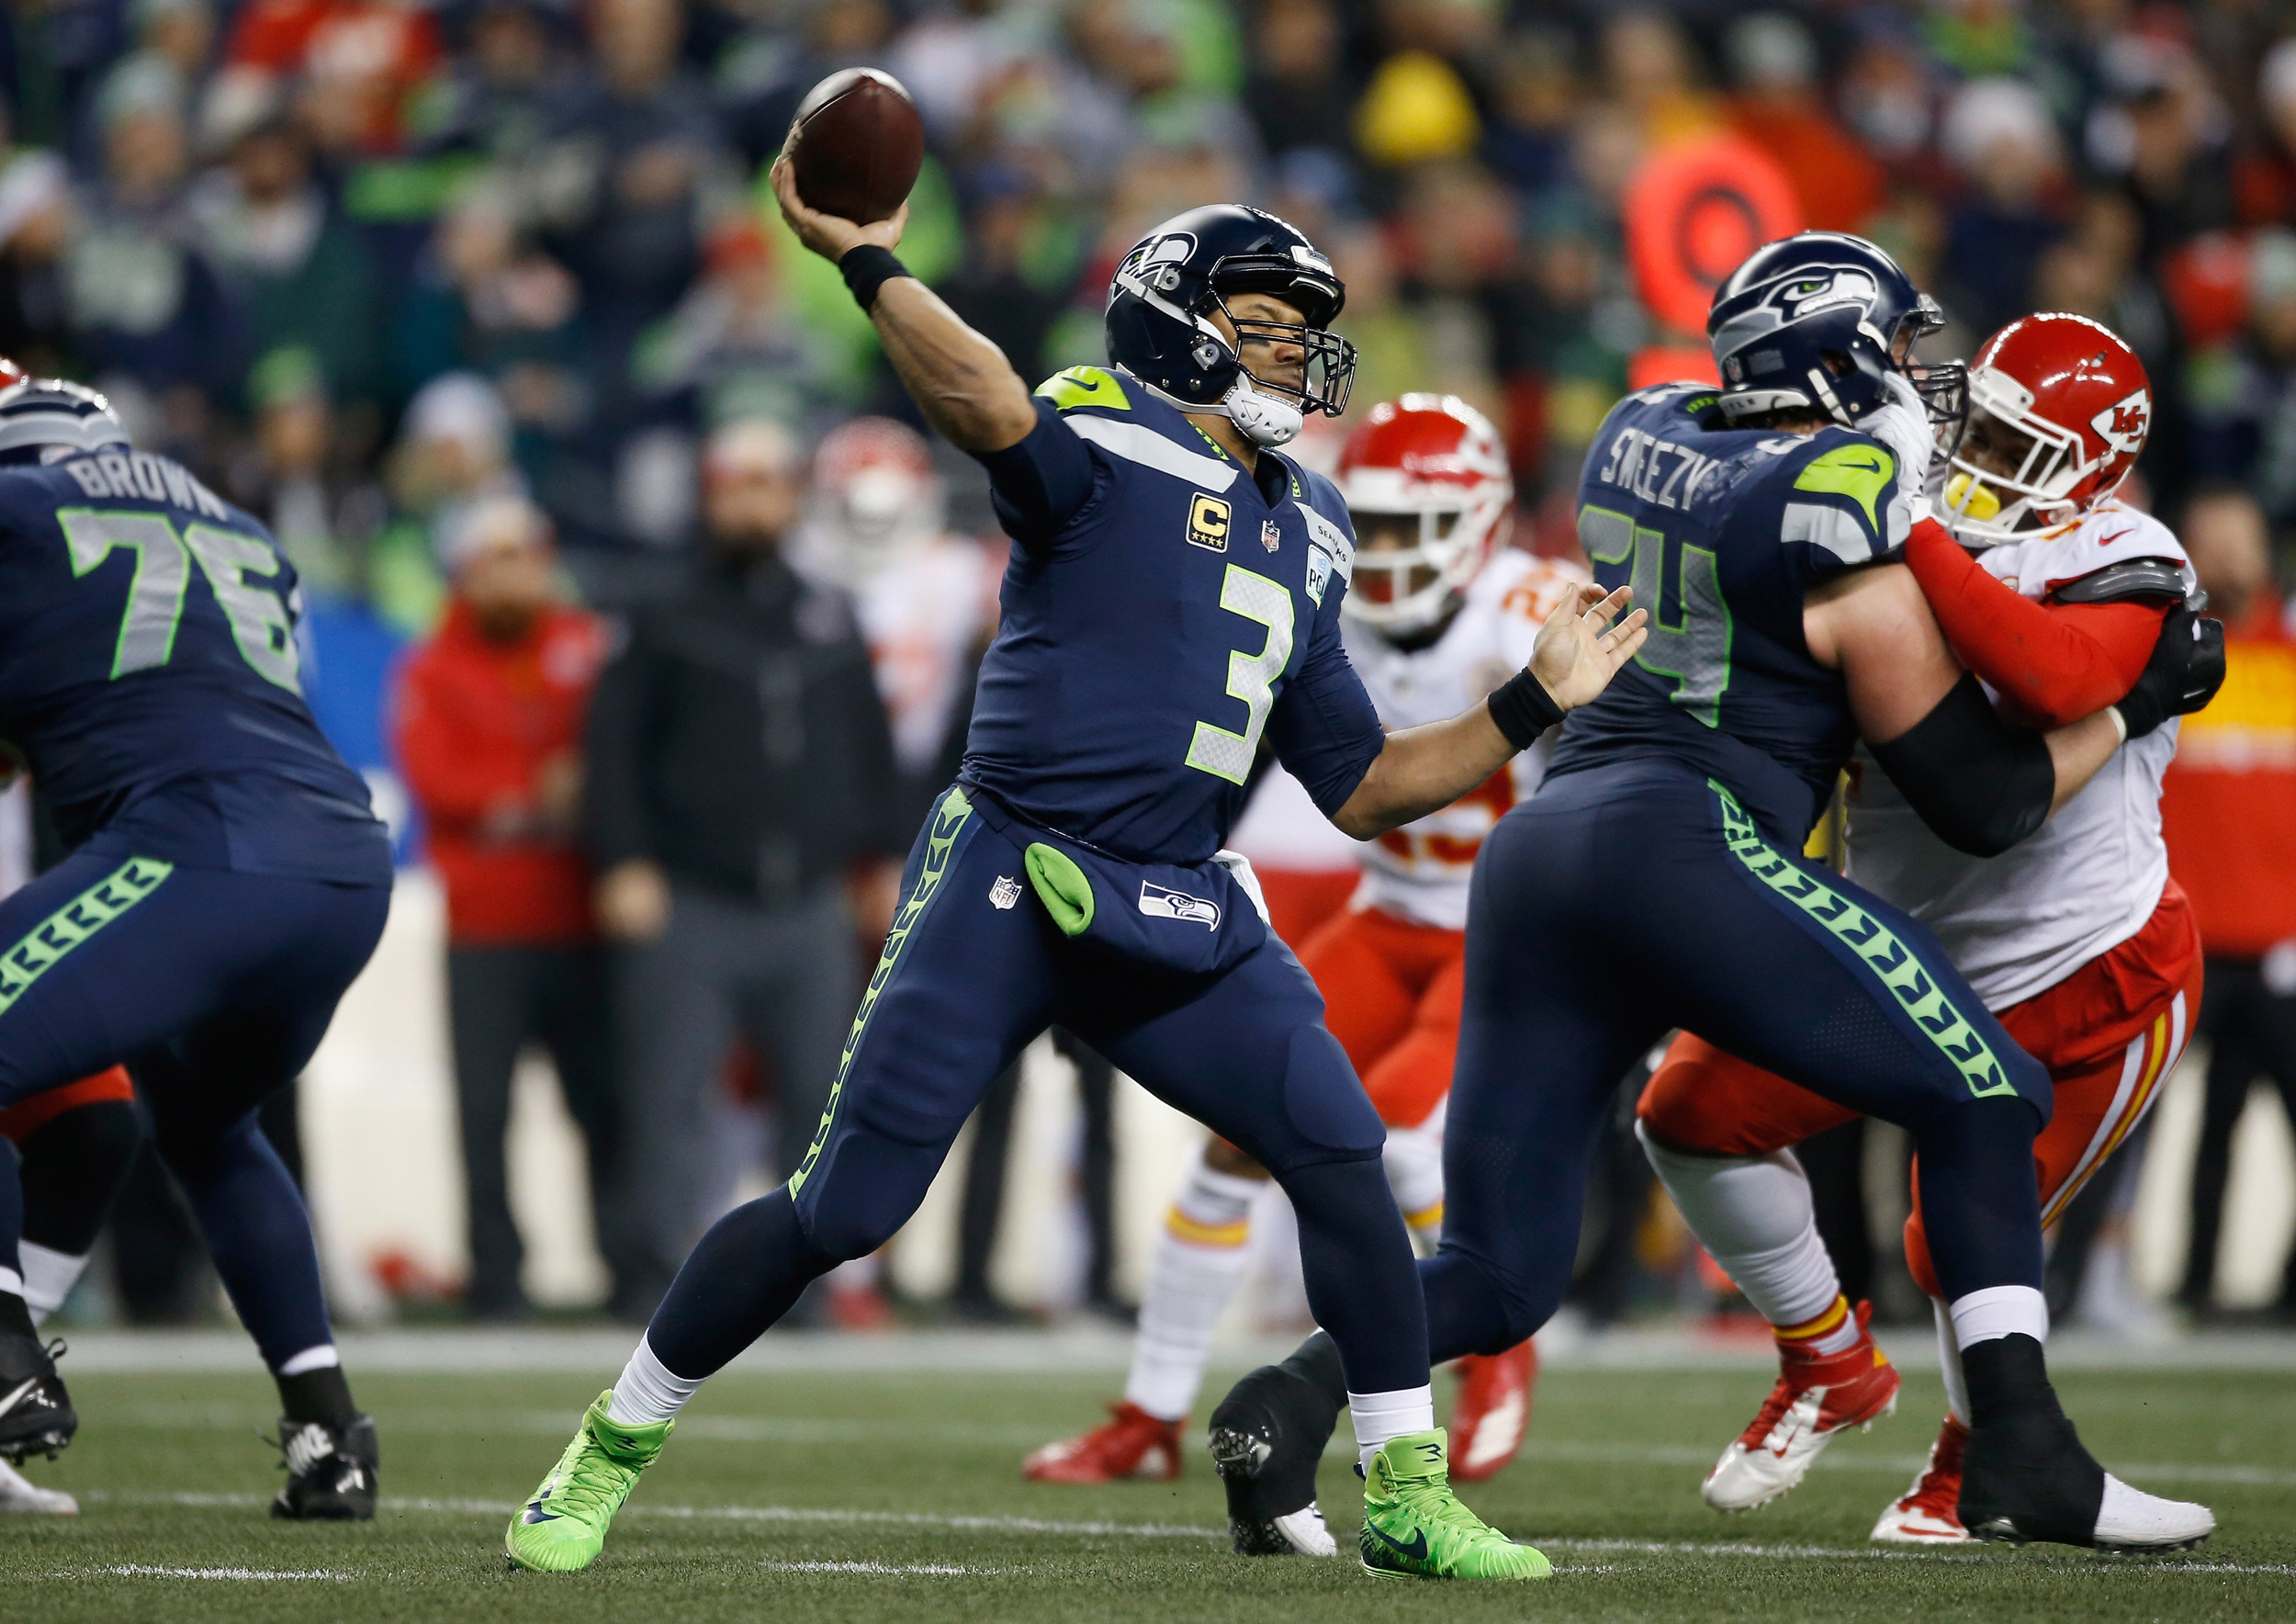 Breaking down playoff scenarios after another dramatic NFL weekend